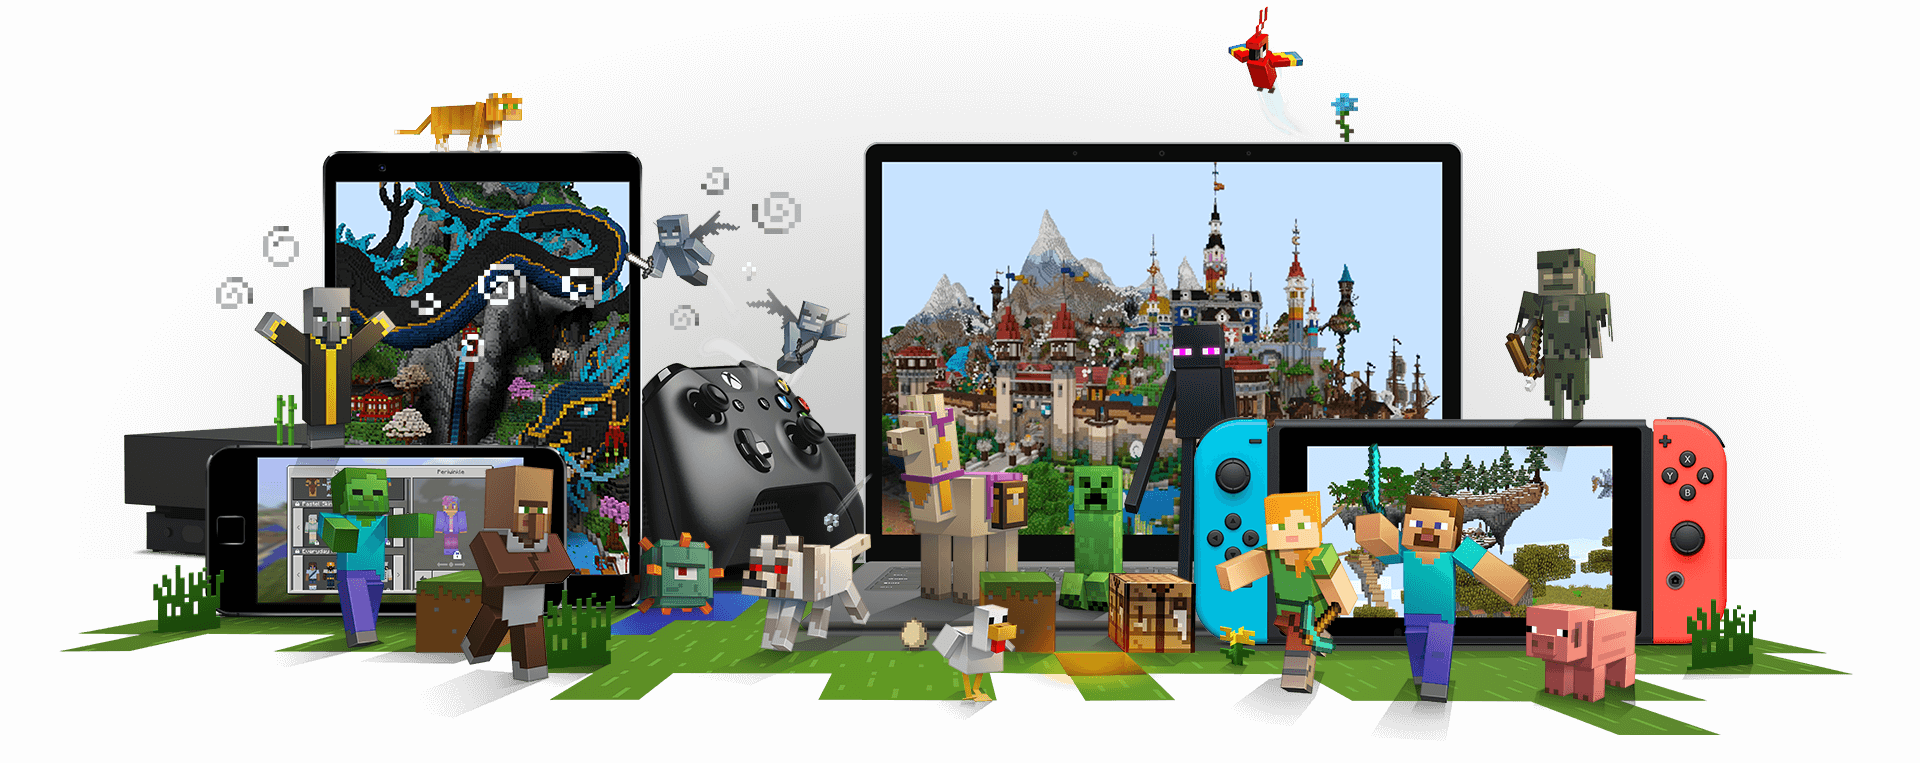 Minecraft characters surrounding devices where Minecraft is playable, including an Xbox, mobile phone, laptop PC and Nintendo Switch.